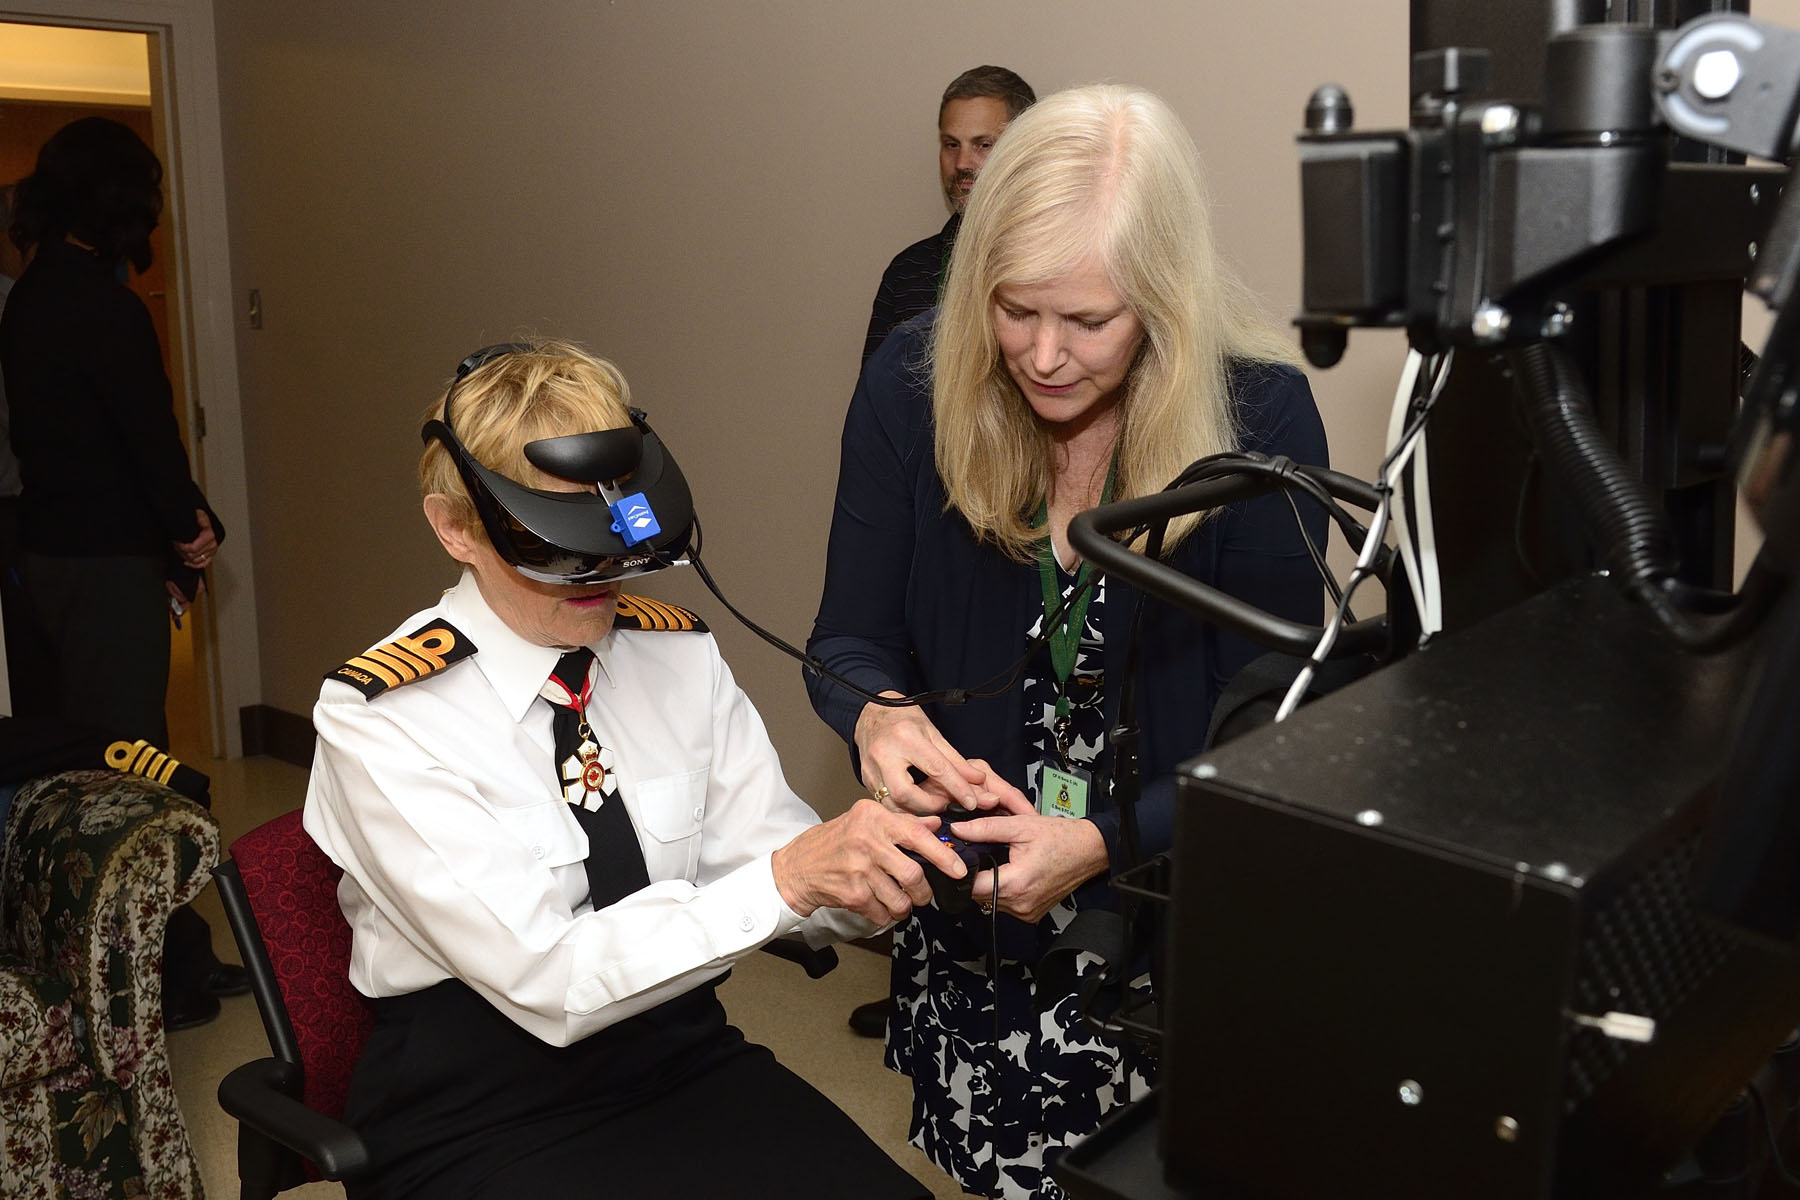 Mrs. Johnston experienced virtual reality-based exposure therapy which aims to provide military members relief from post-traumatic stress.